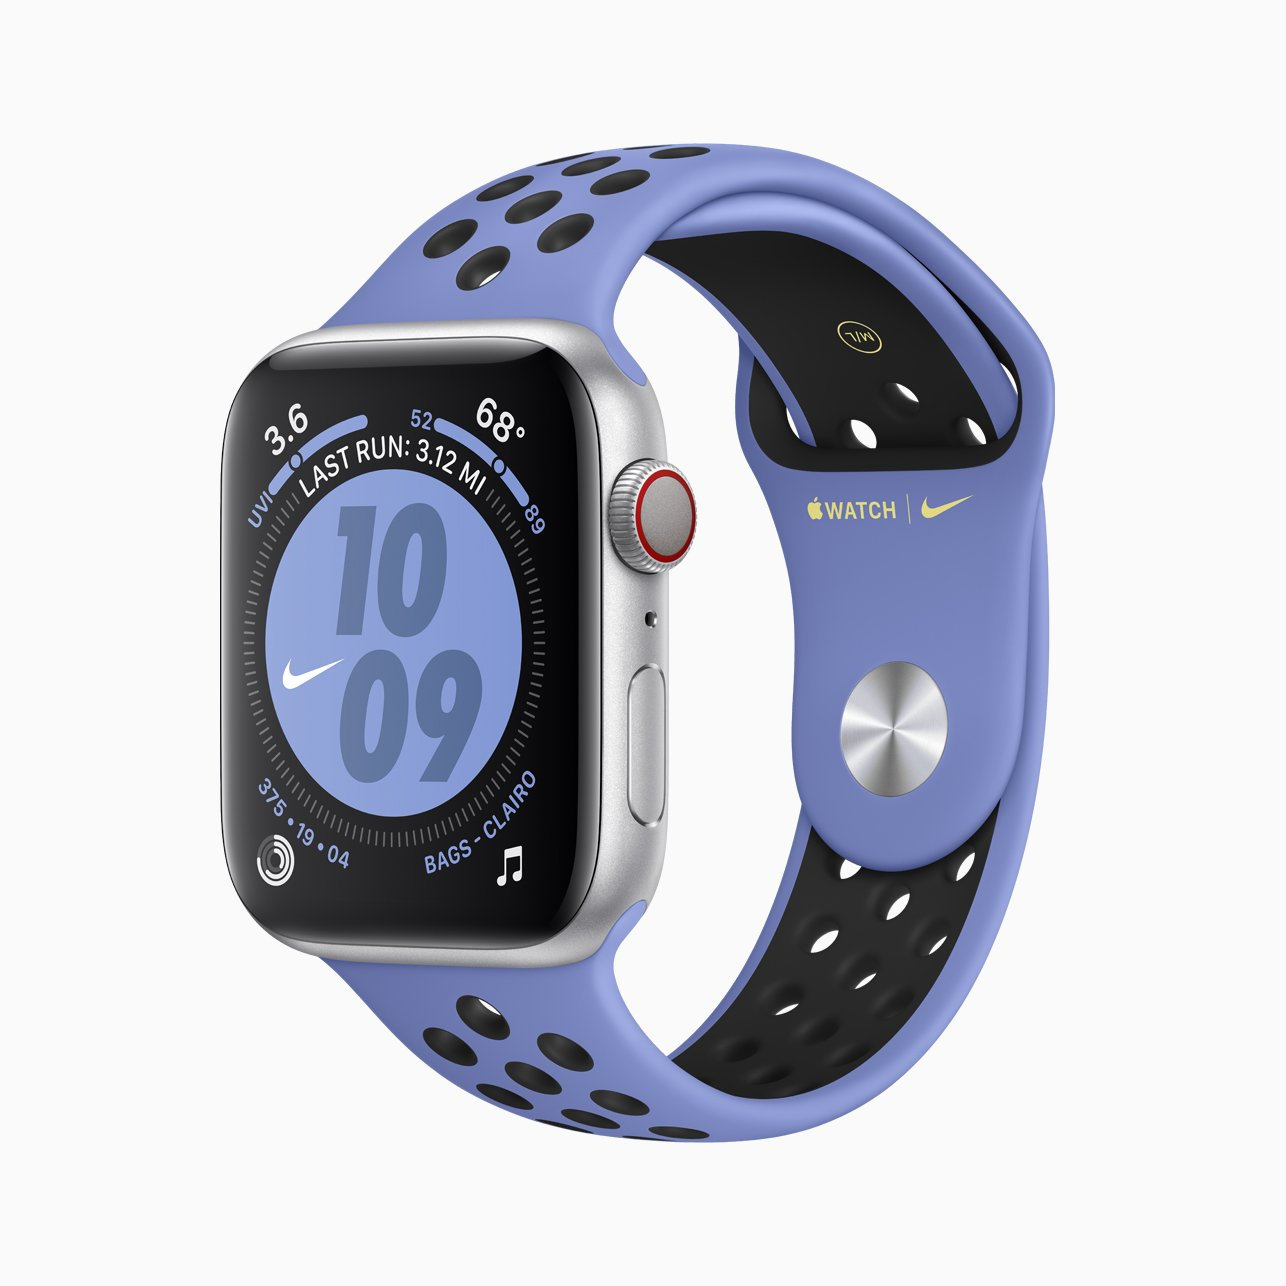 NIKE: Apple's Nike sports band is a popular choice.